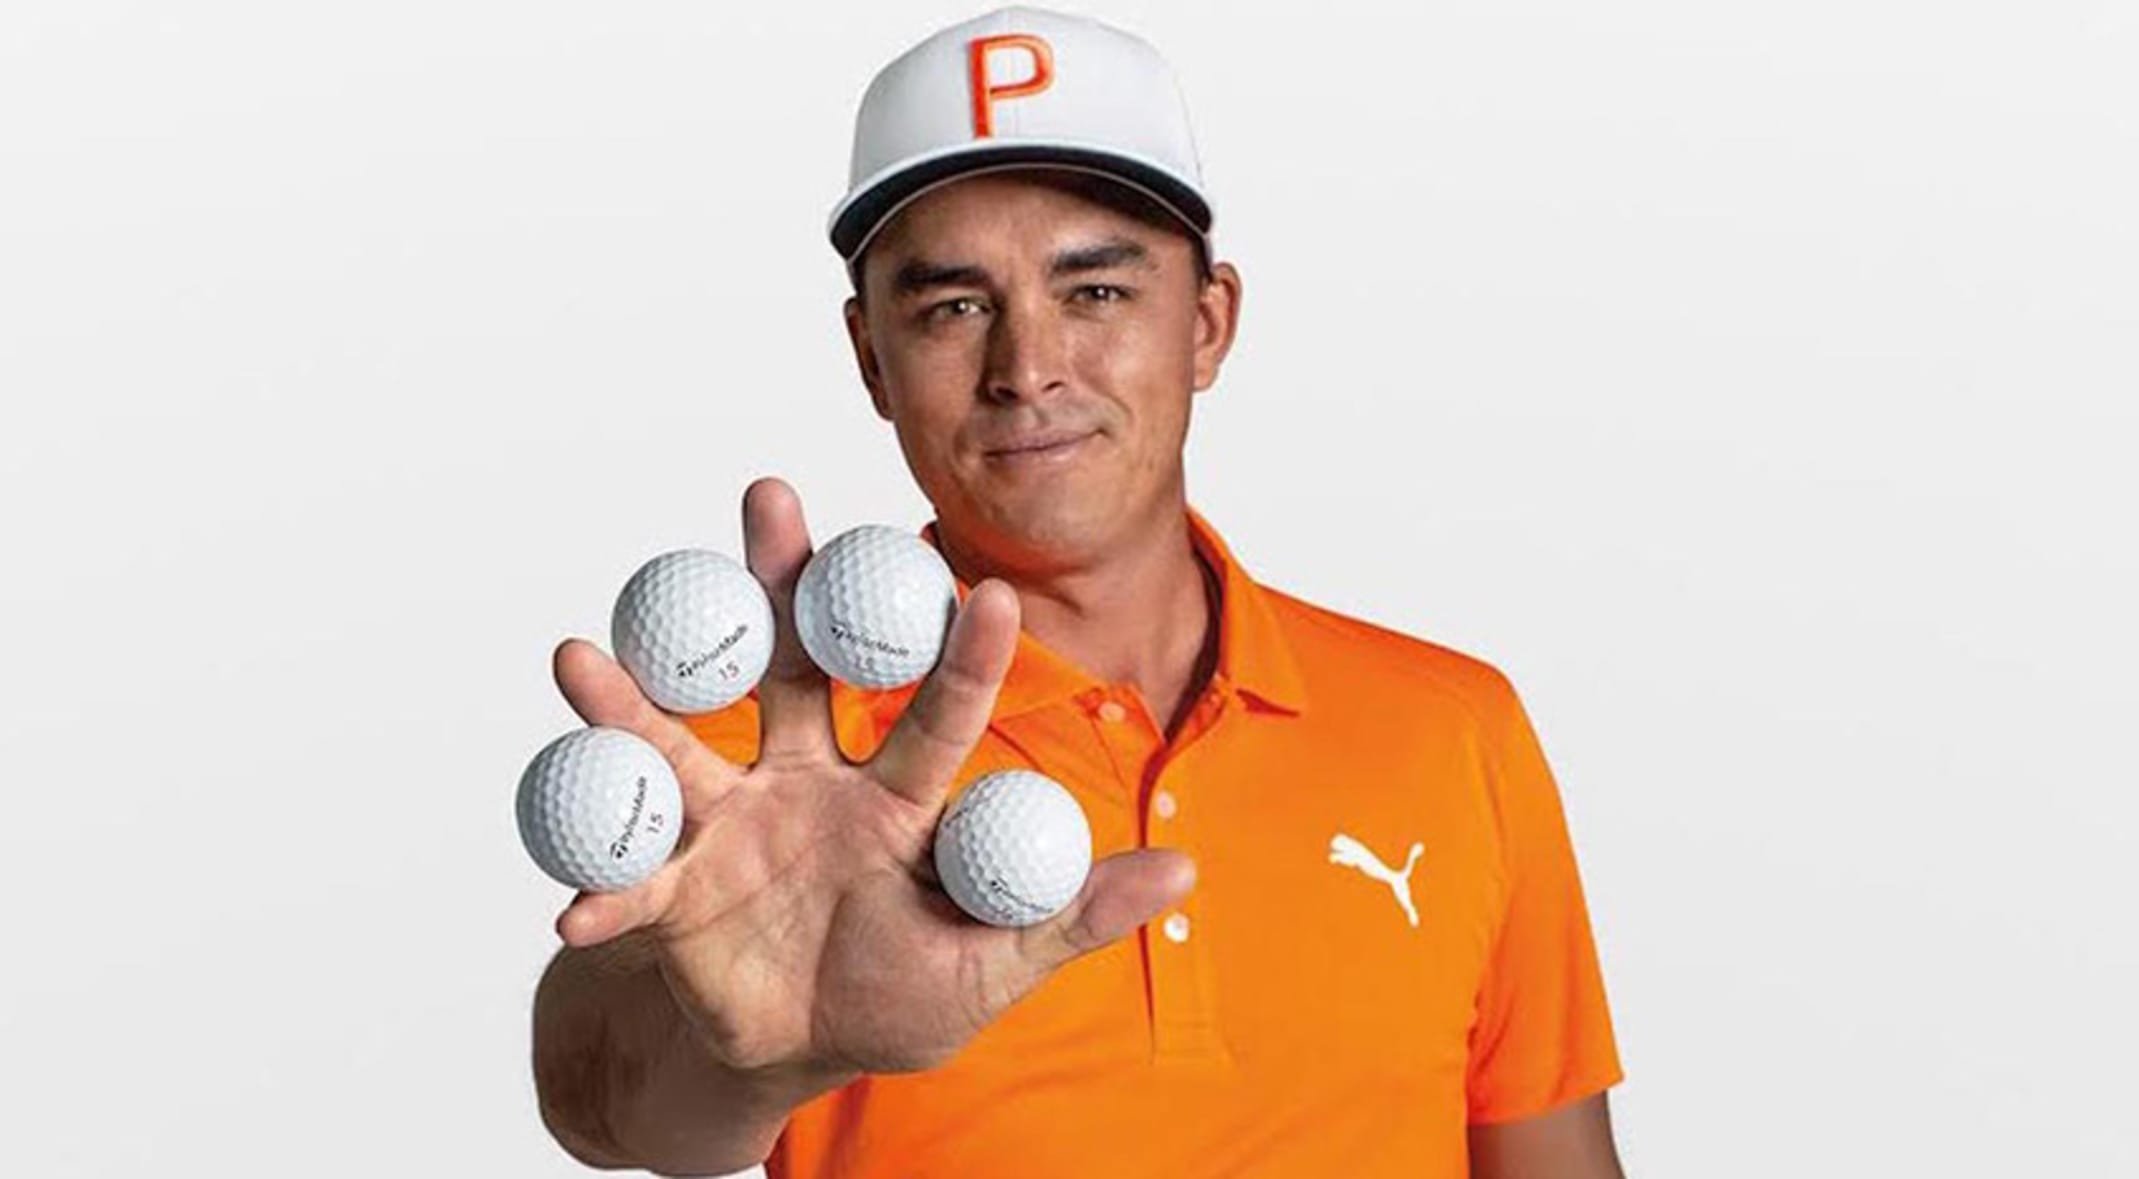 Rickie Fowler will be playing a new ball and will be wearing a new glove  when 49ed1873432